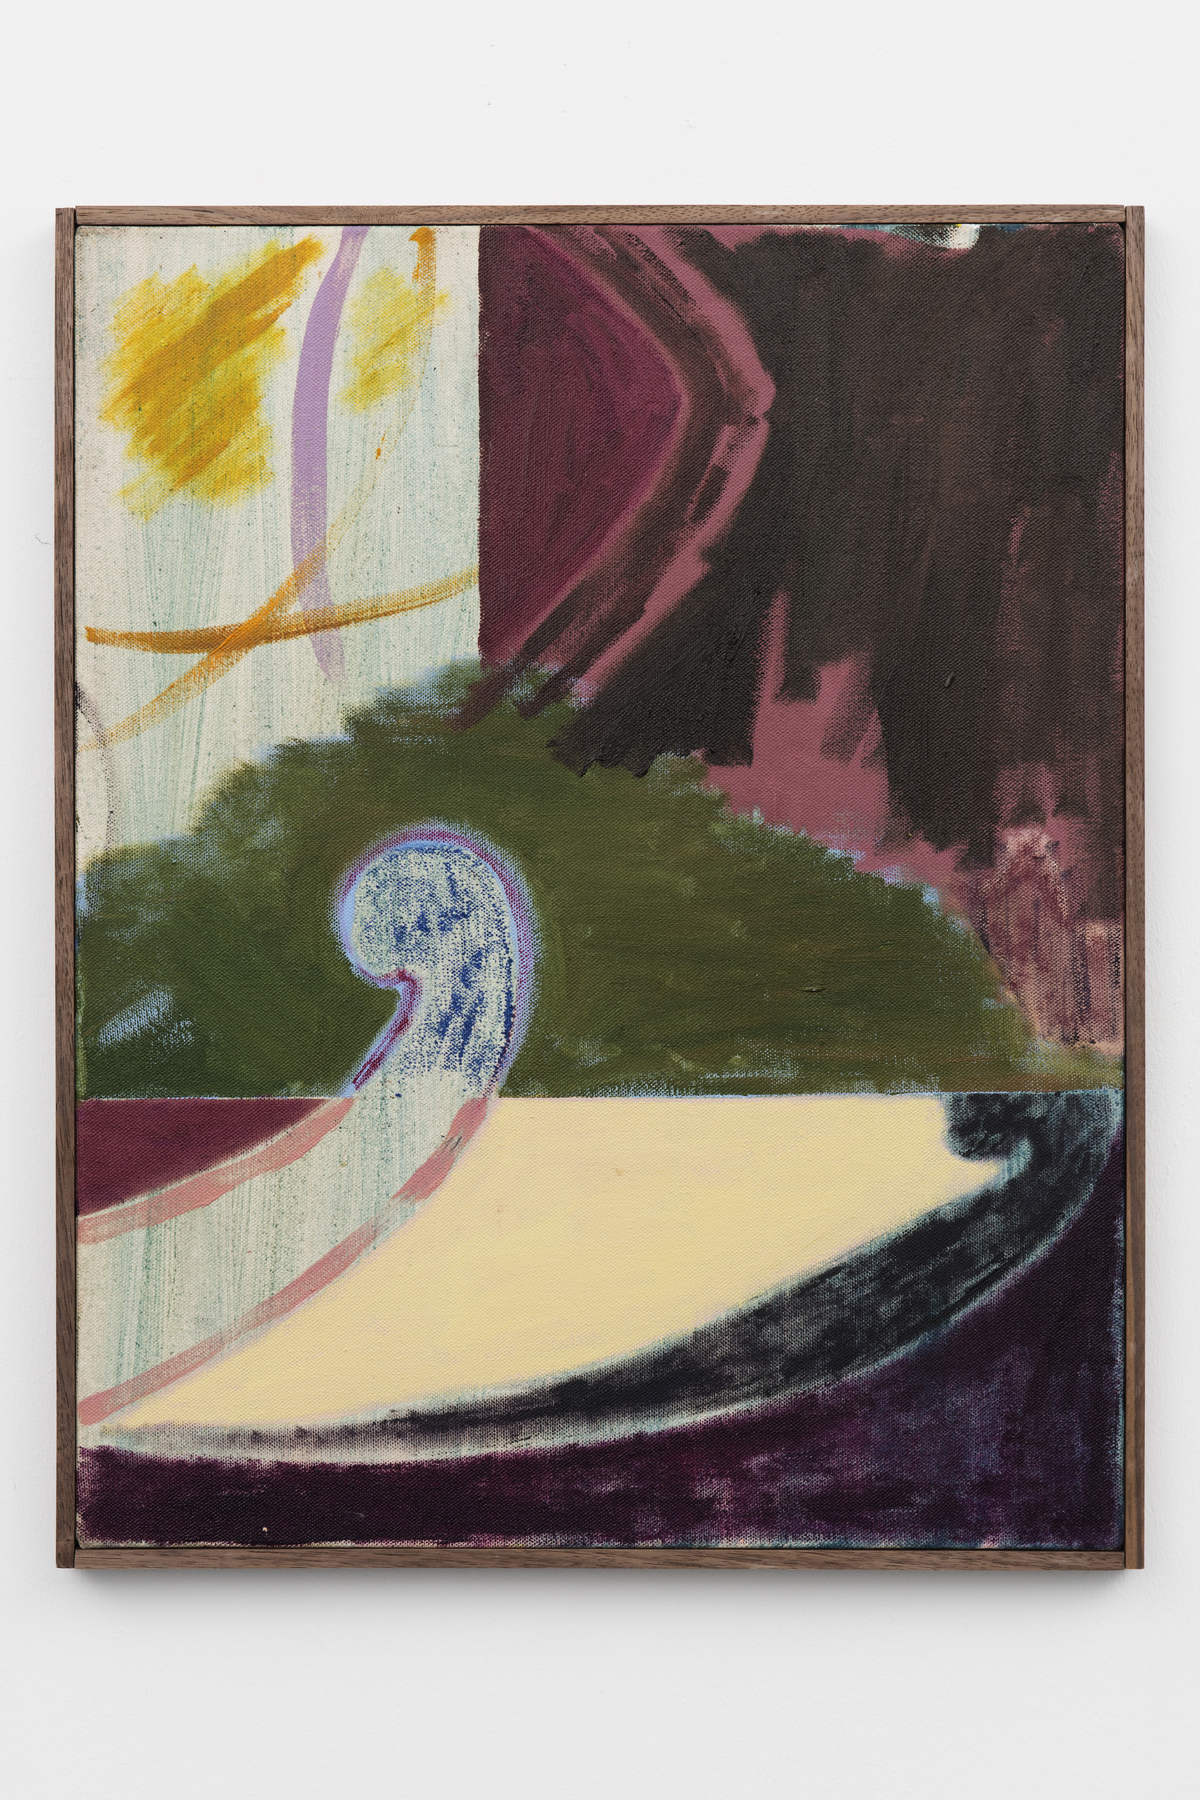 4-Jon-Pilkington-To-Be-Titled-Oil, wax crayon and lacquer on canvas -image courtesy CINNNAMON Rotterdam